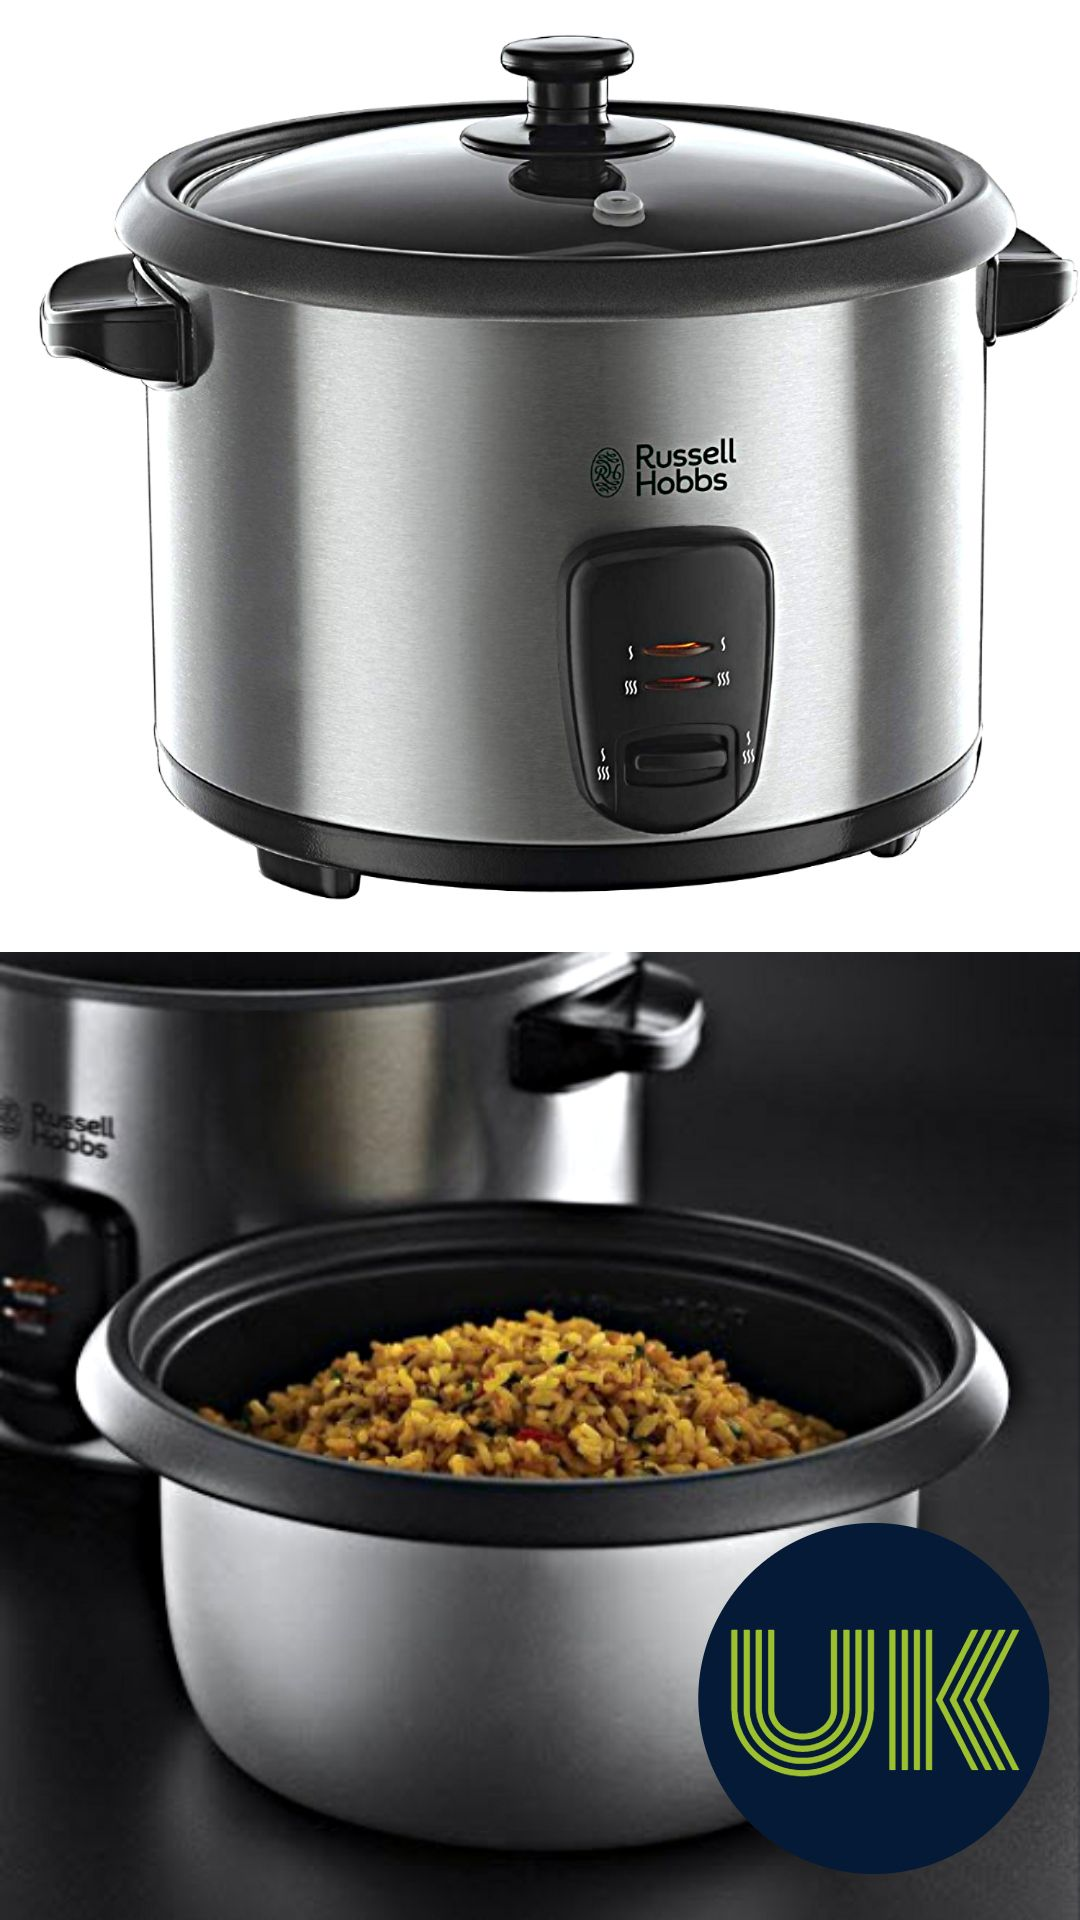 1.8 L Silver Russell Hobbs Rice Cooker and Steamer 19750